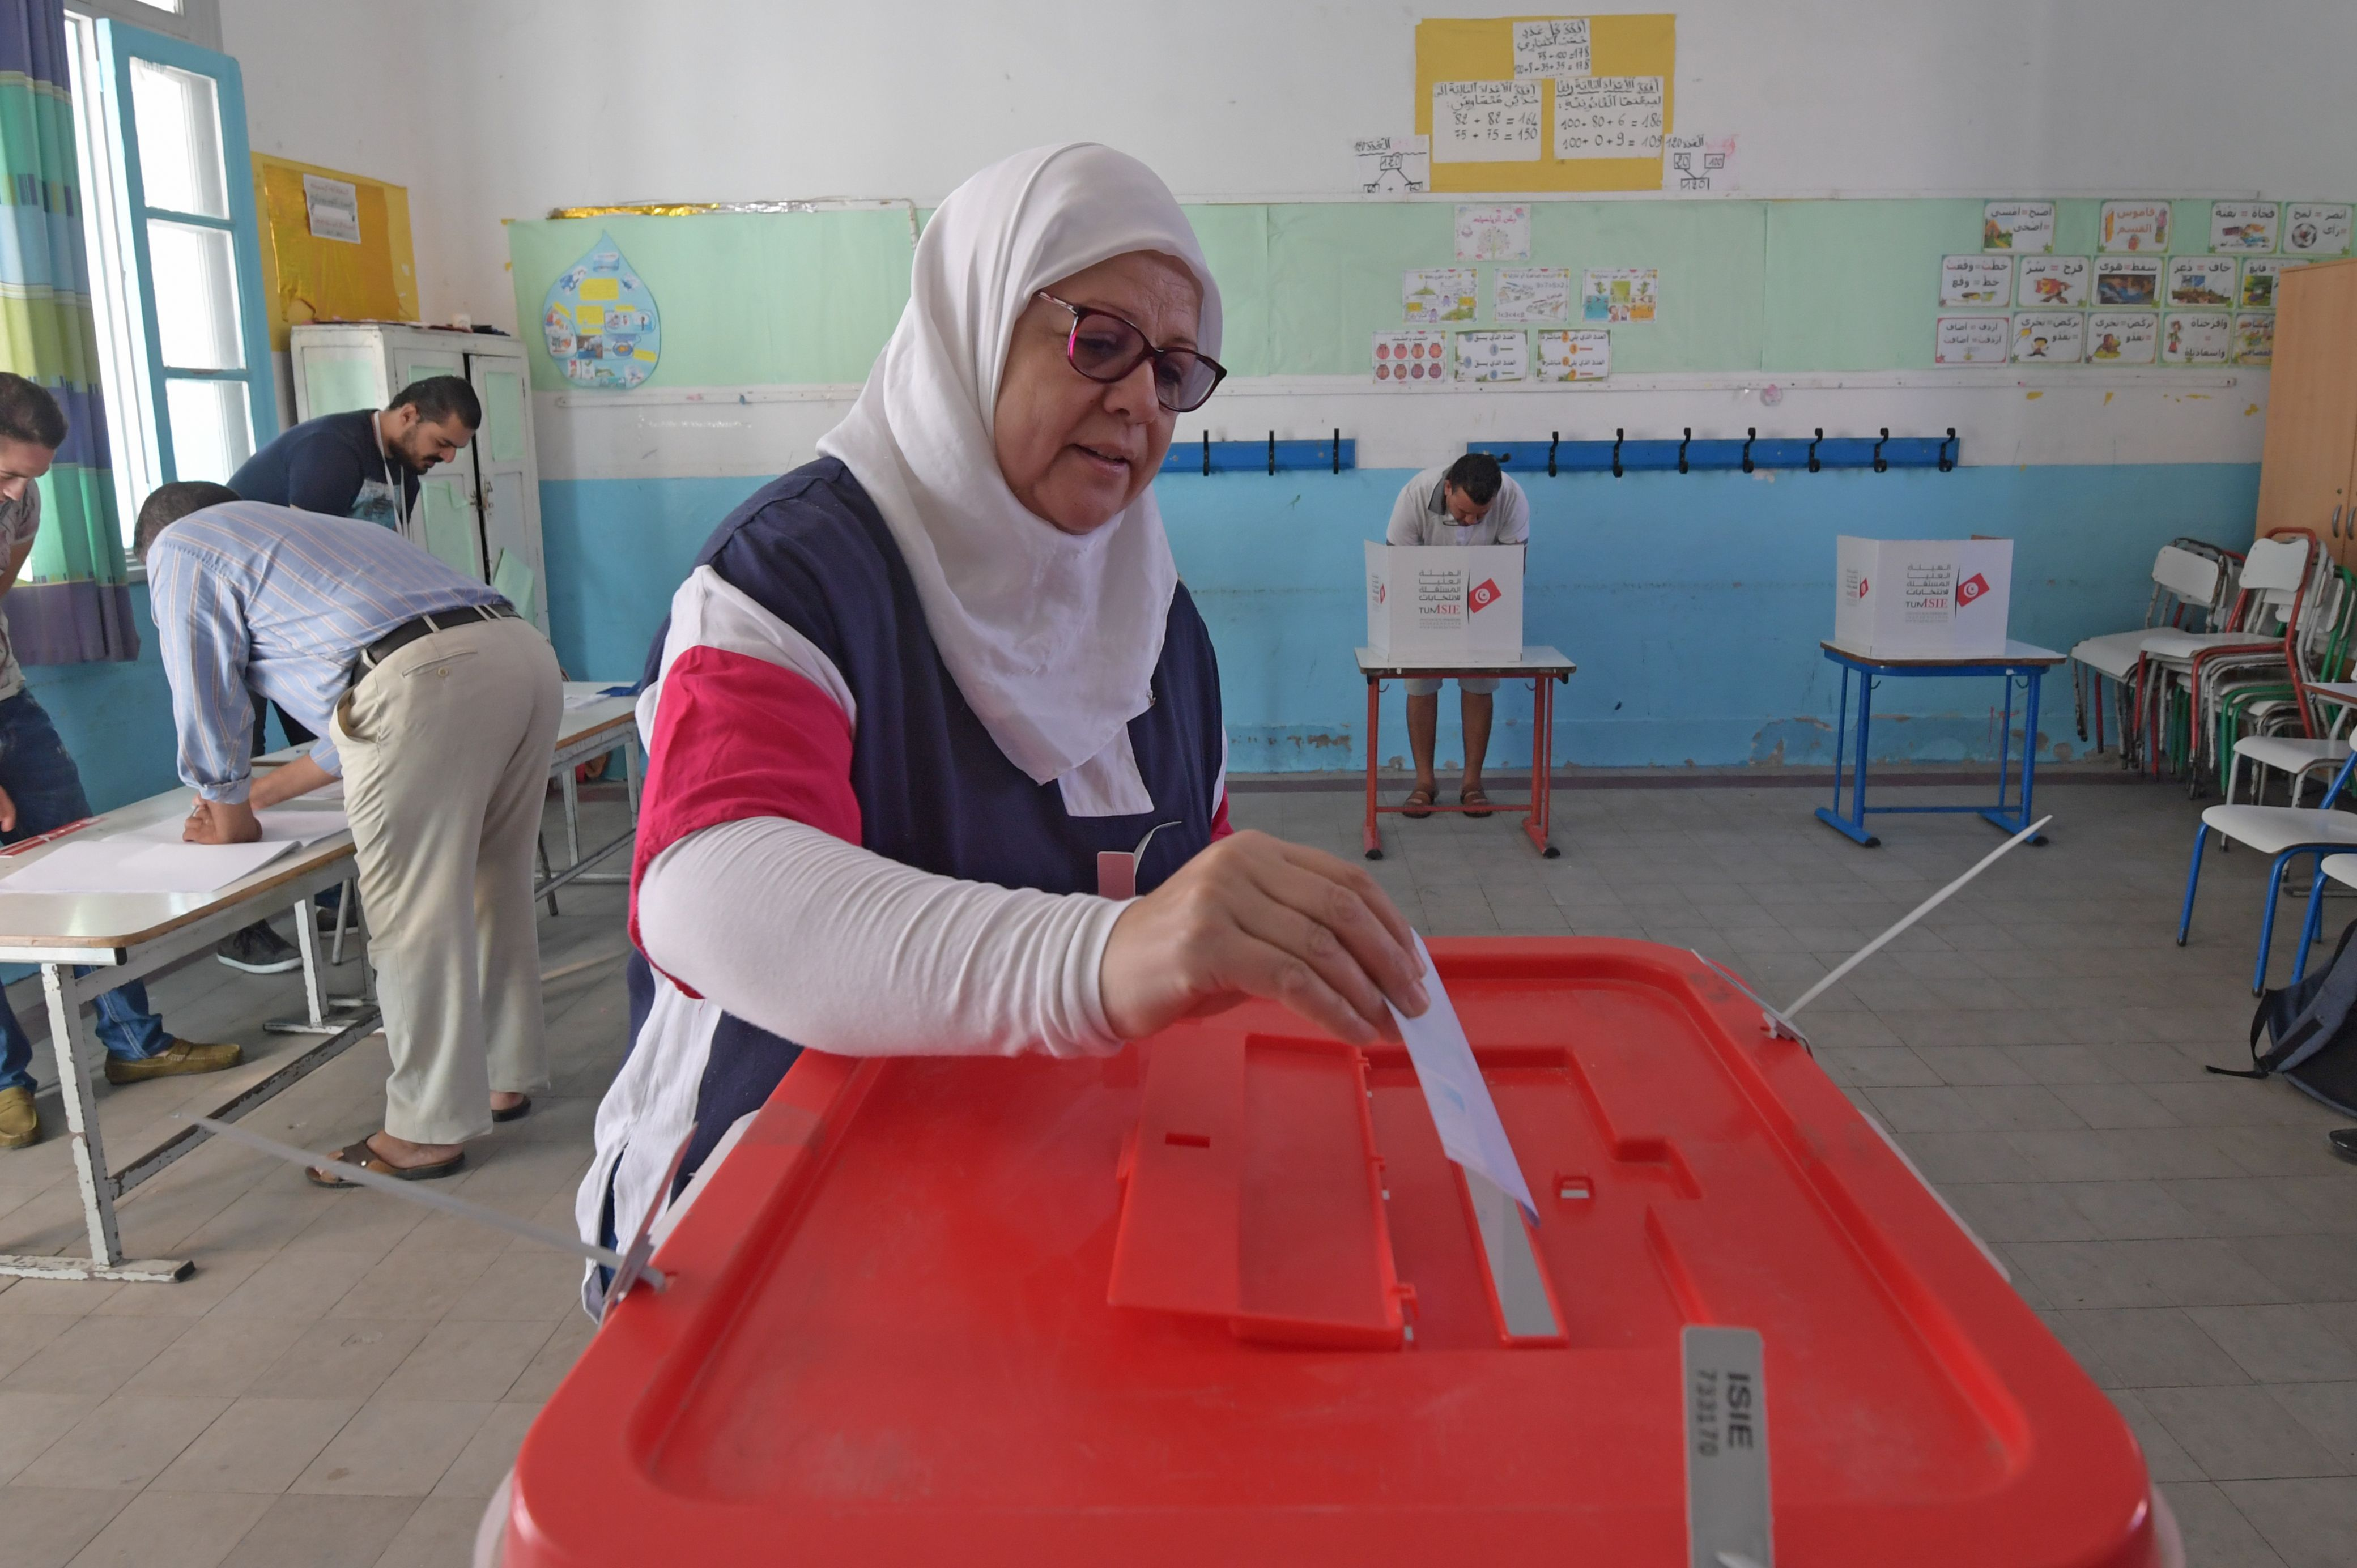 Kais Saied landslide victory in Tunisian presidential election hailed by supporters as revival of 2011 democratic revolution